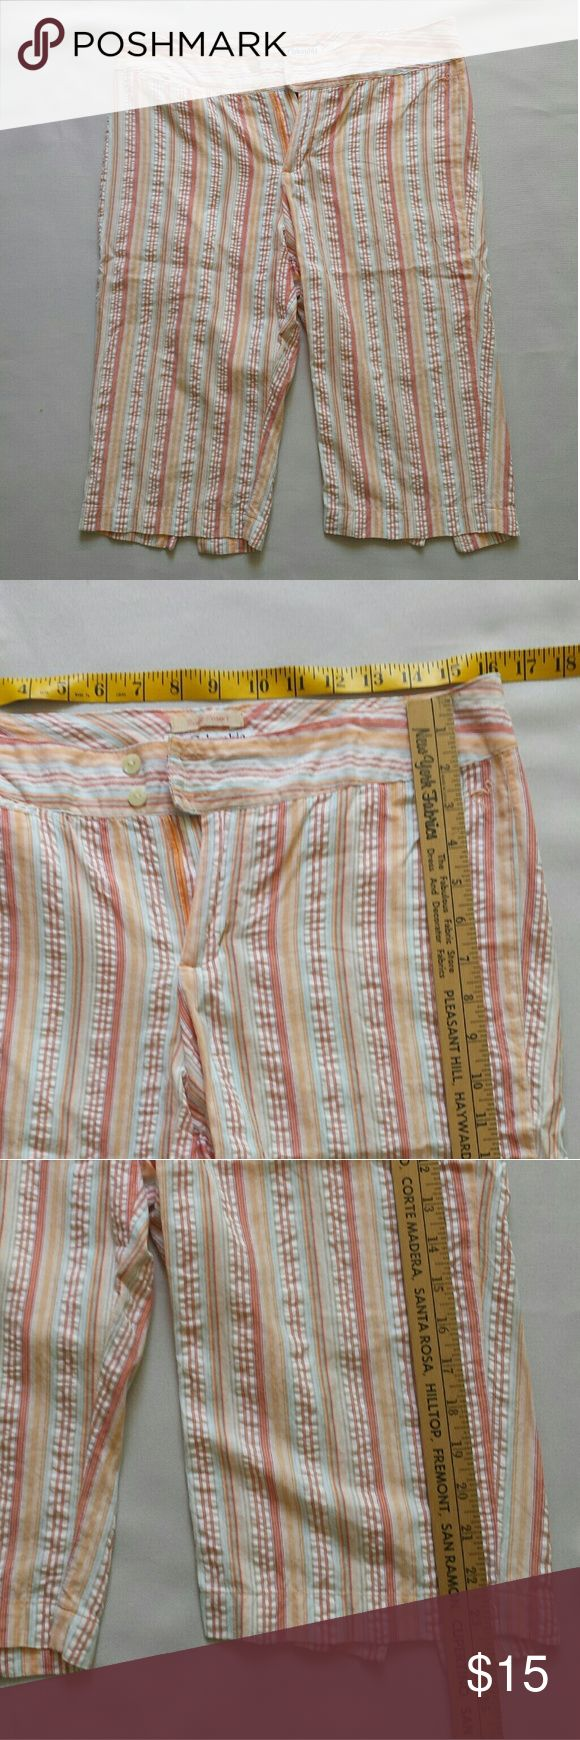 Columbia Sportswear striped flat front shorts Columbia Sportswear river resort bermuda shorts. Button closure. White with orange/red striped design. Size 8. 100%cotton. Columbia Shorts Bermudas